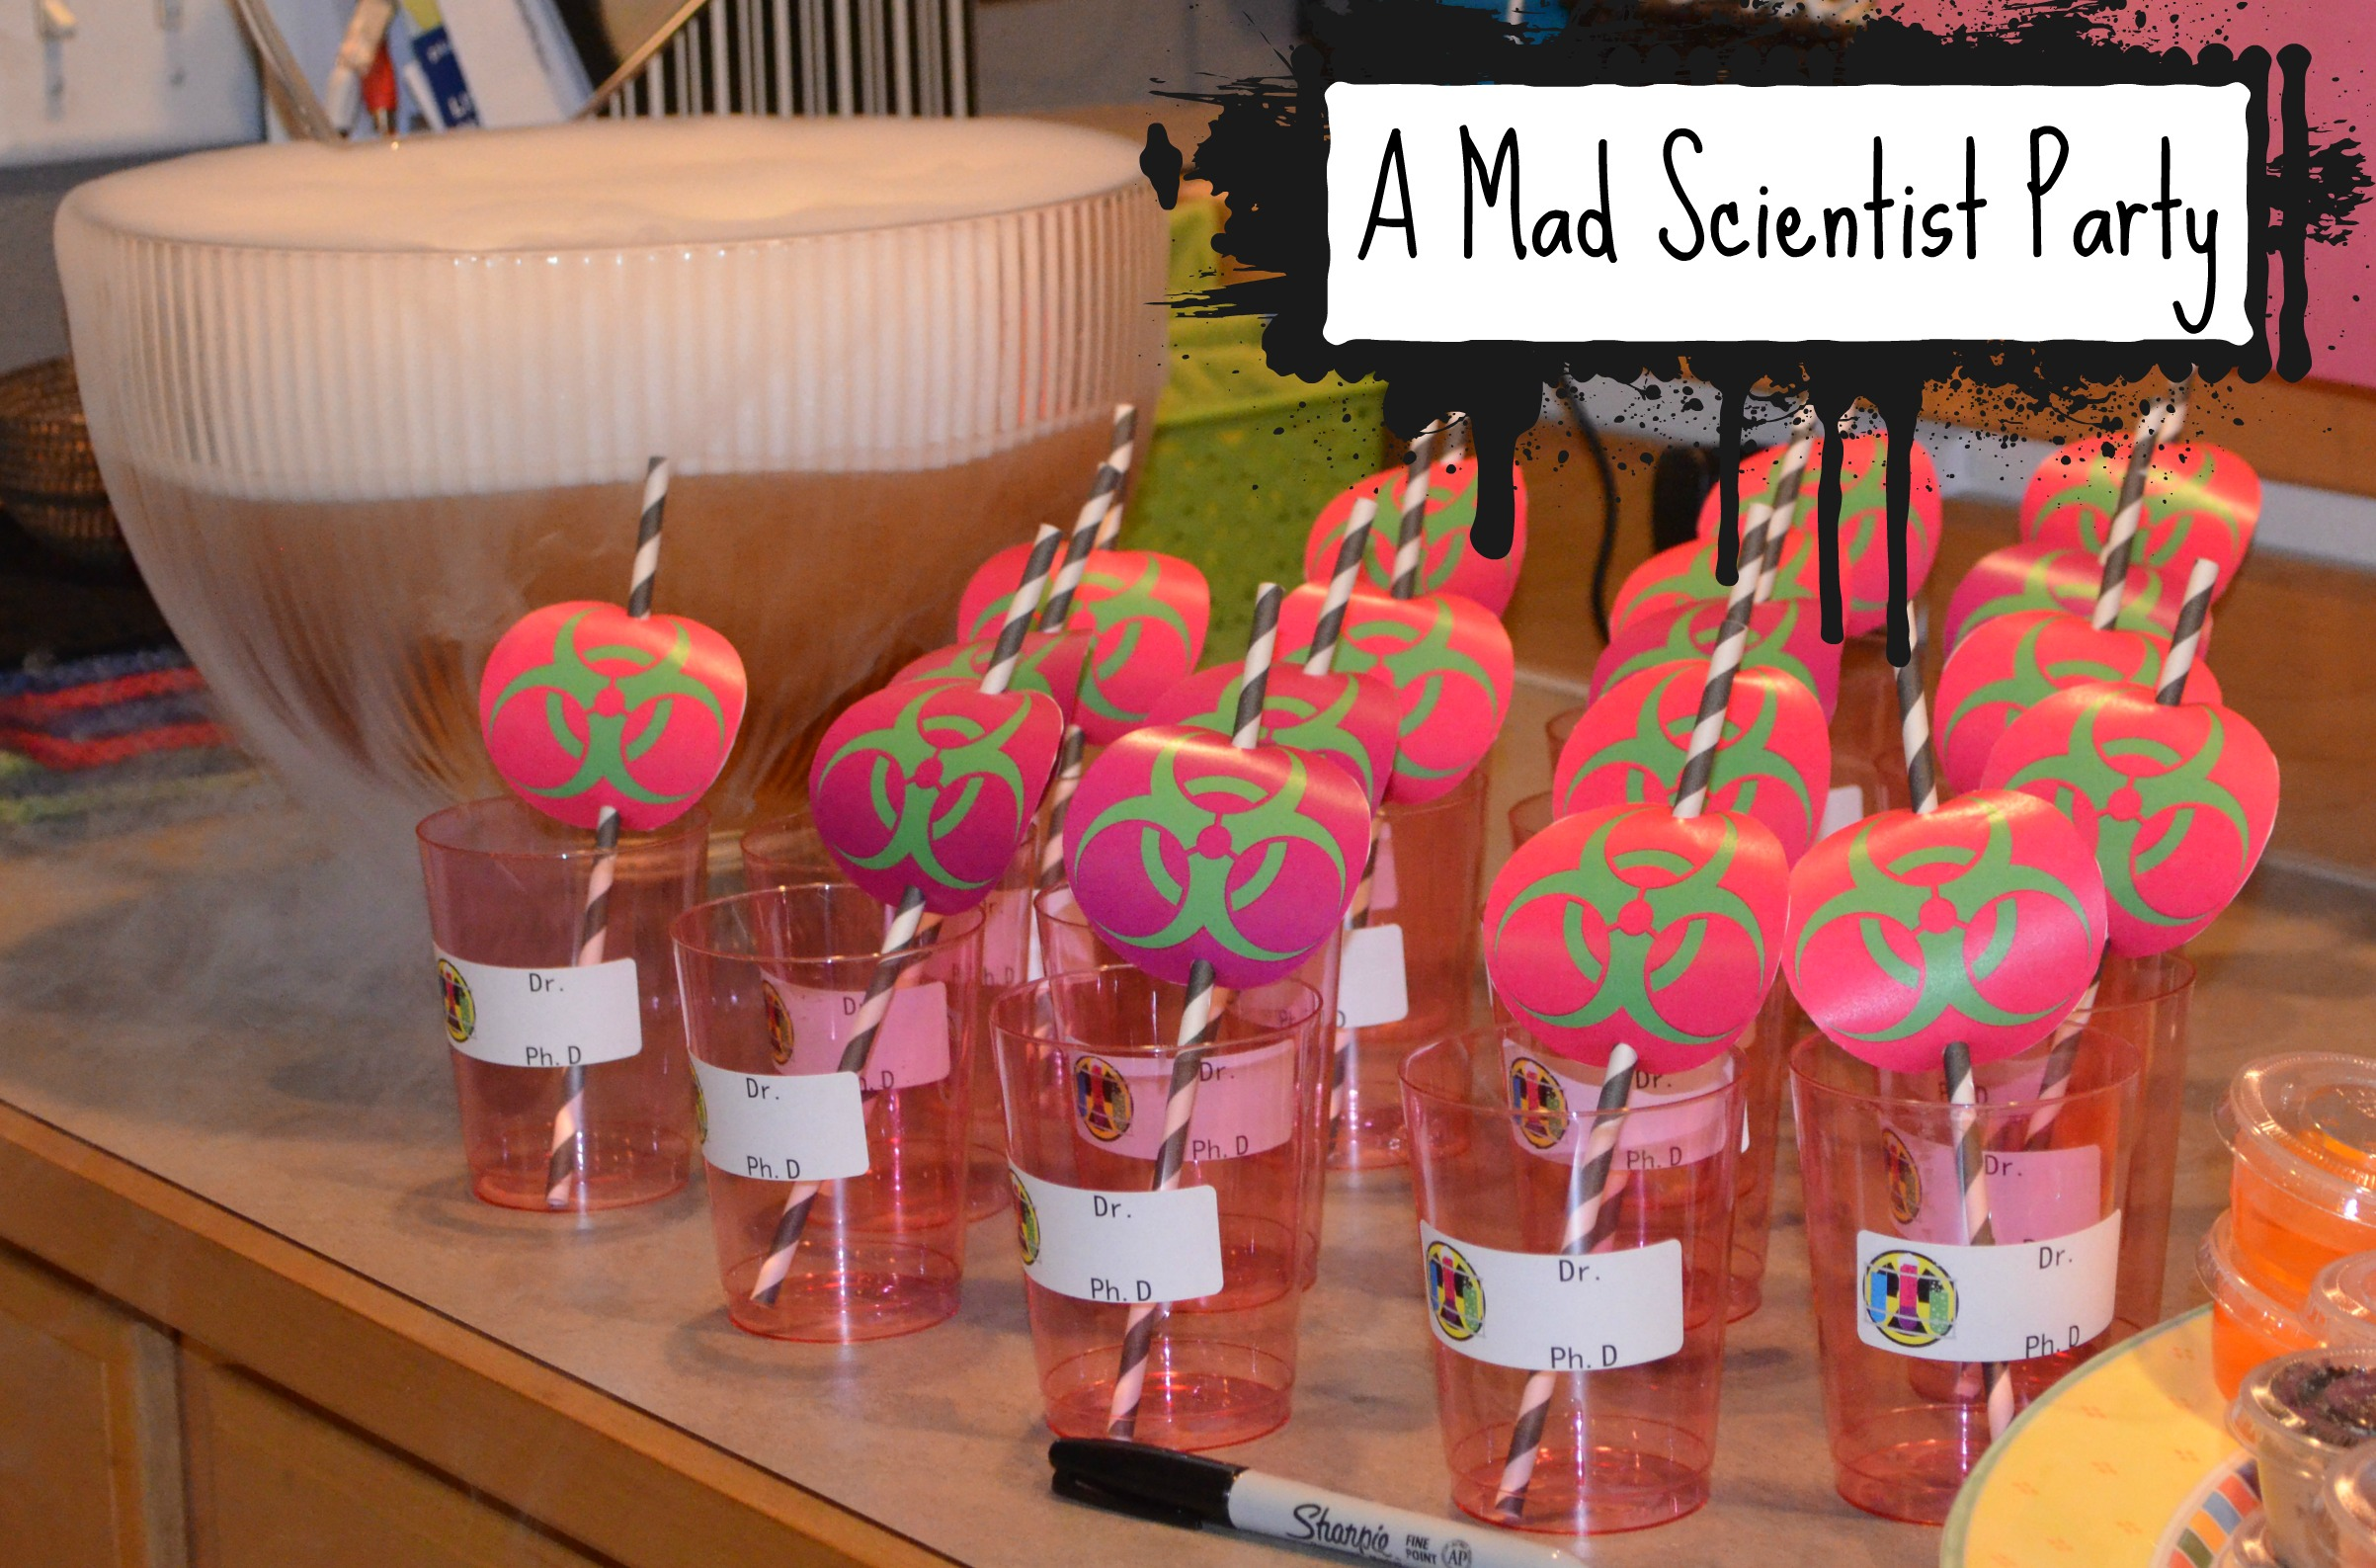 A Mad Scientist Party